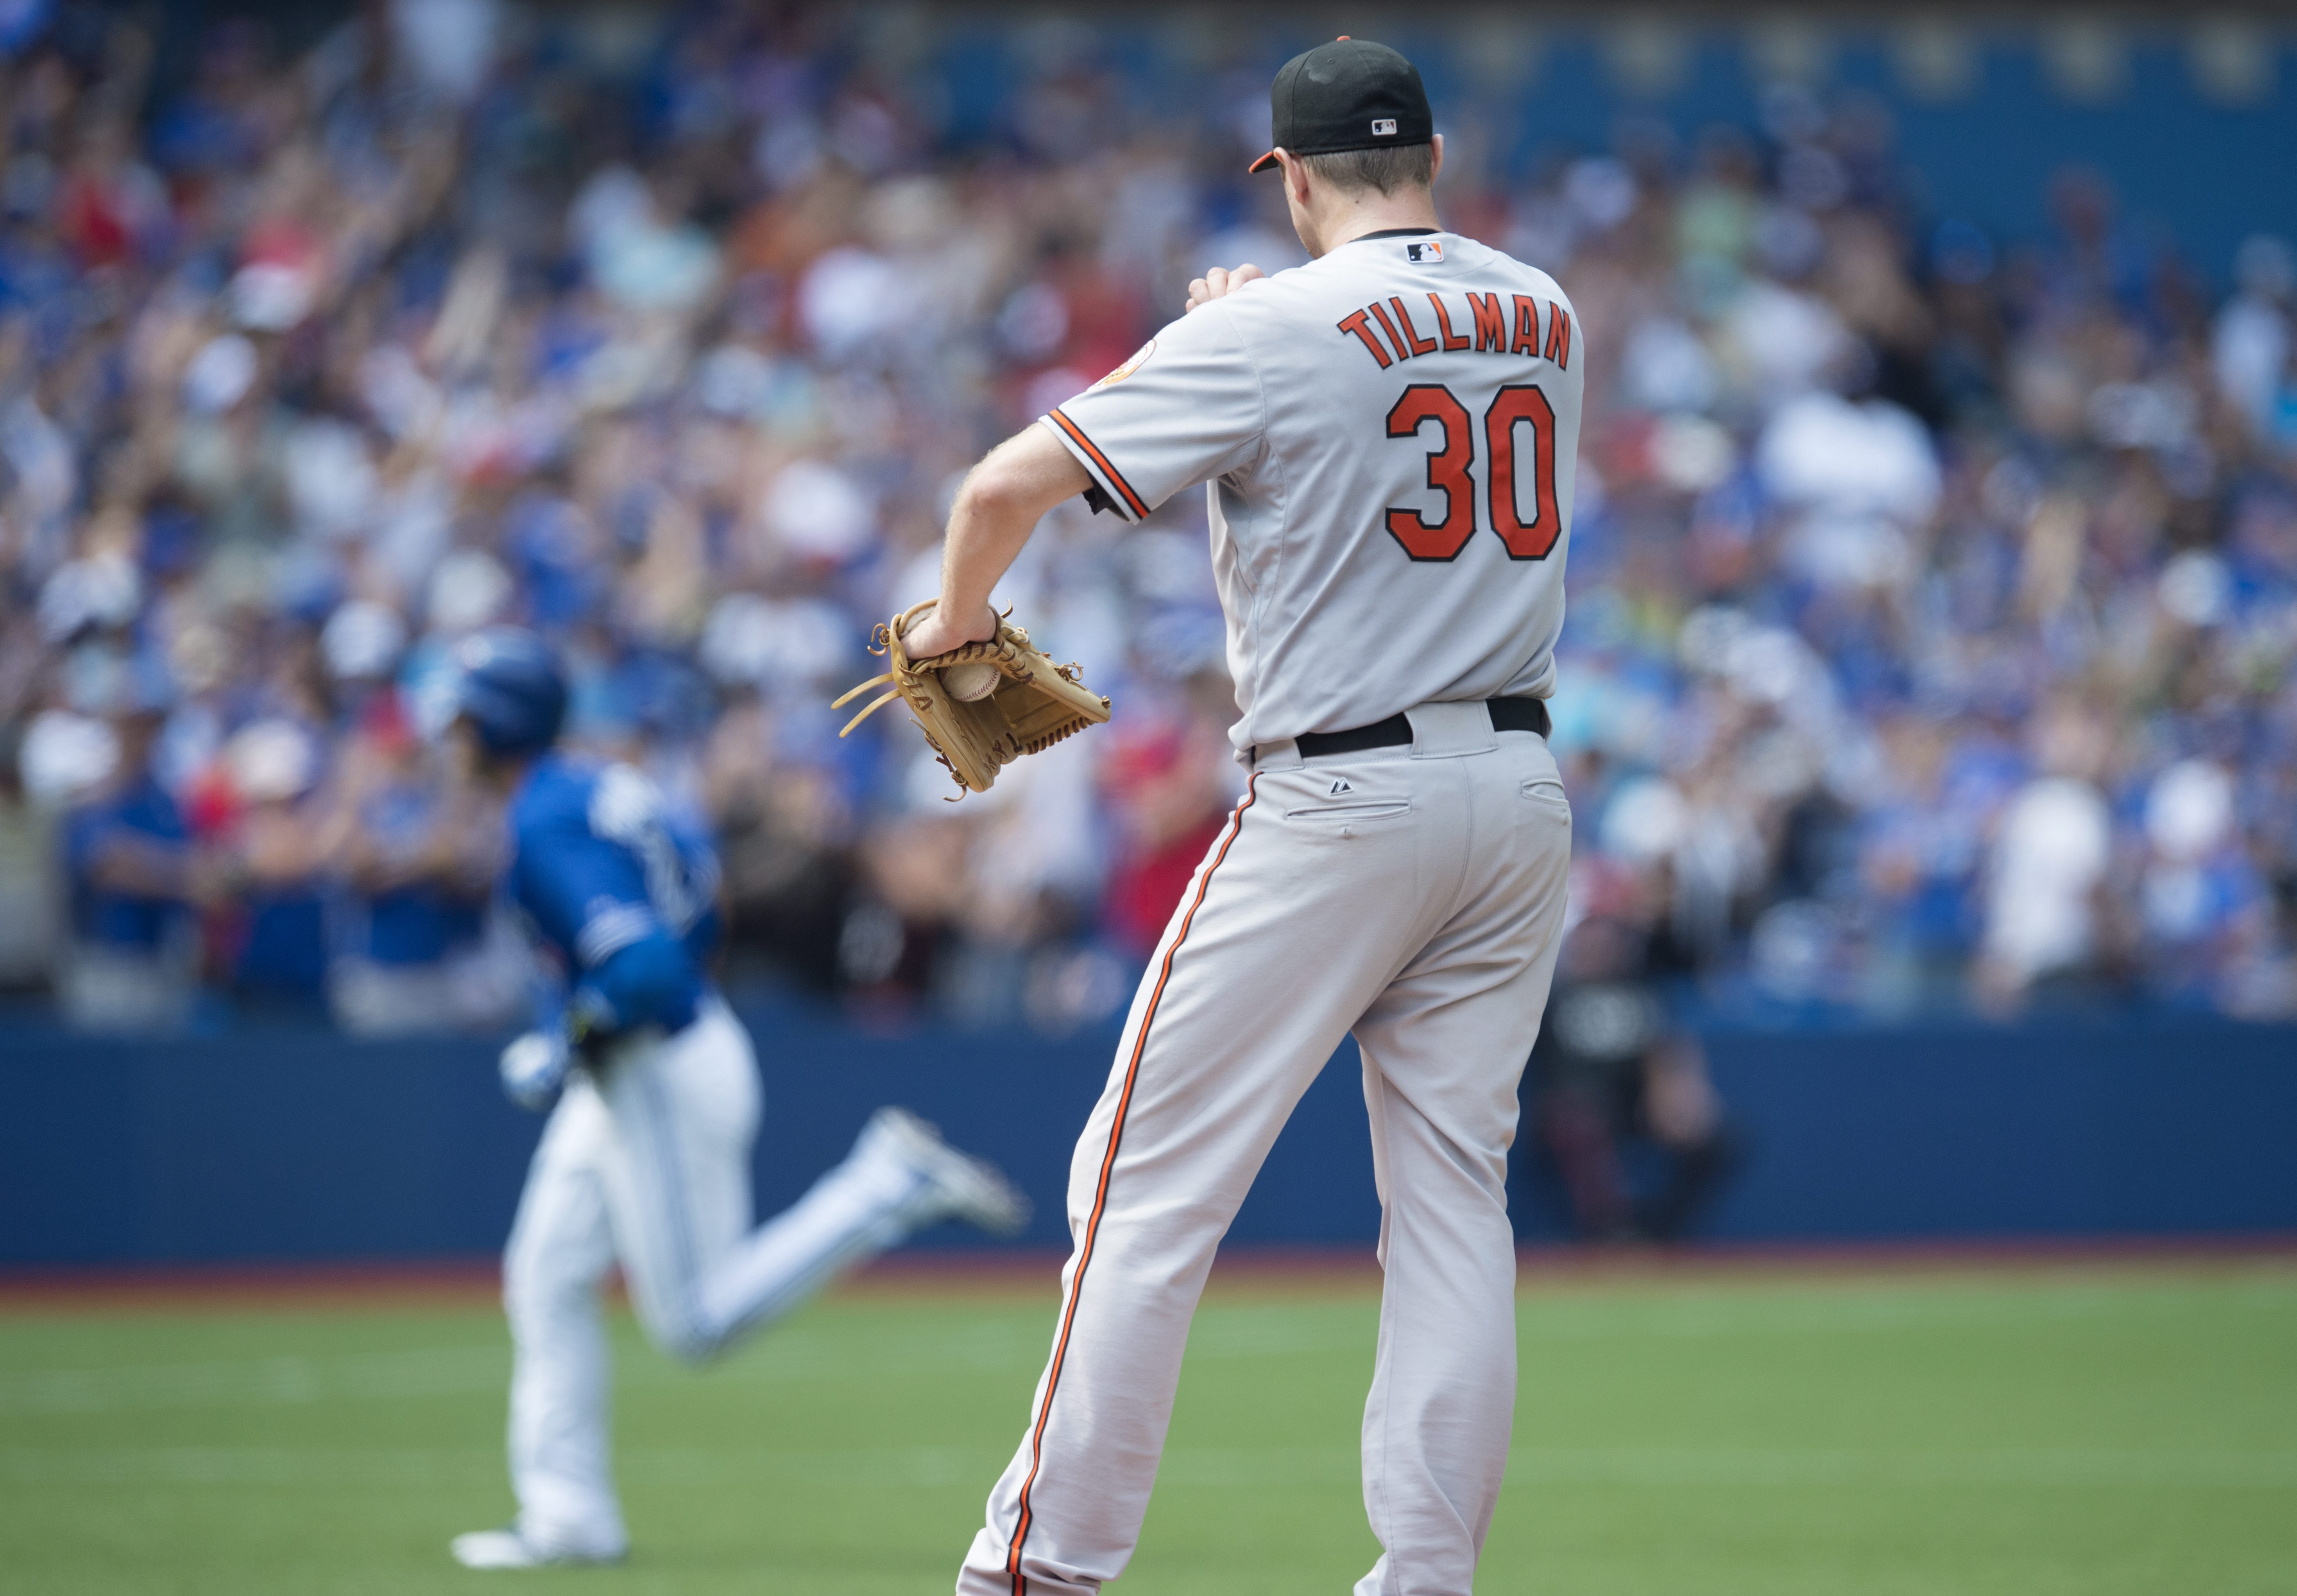 Baltimore Orioles starting pitcher Chris Tillman, right, stands on the mound as Toronto Blue Jays' Troy Tulowitzki rounds the bases following a two-run home run during third-inning baseball game action in Toronto, Sunday, Sept. 6, 2015. (Darren Calabrese/